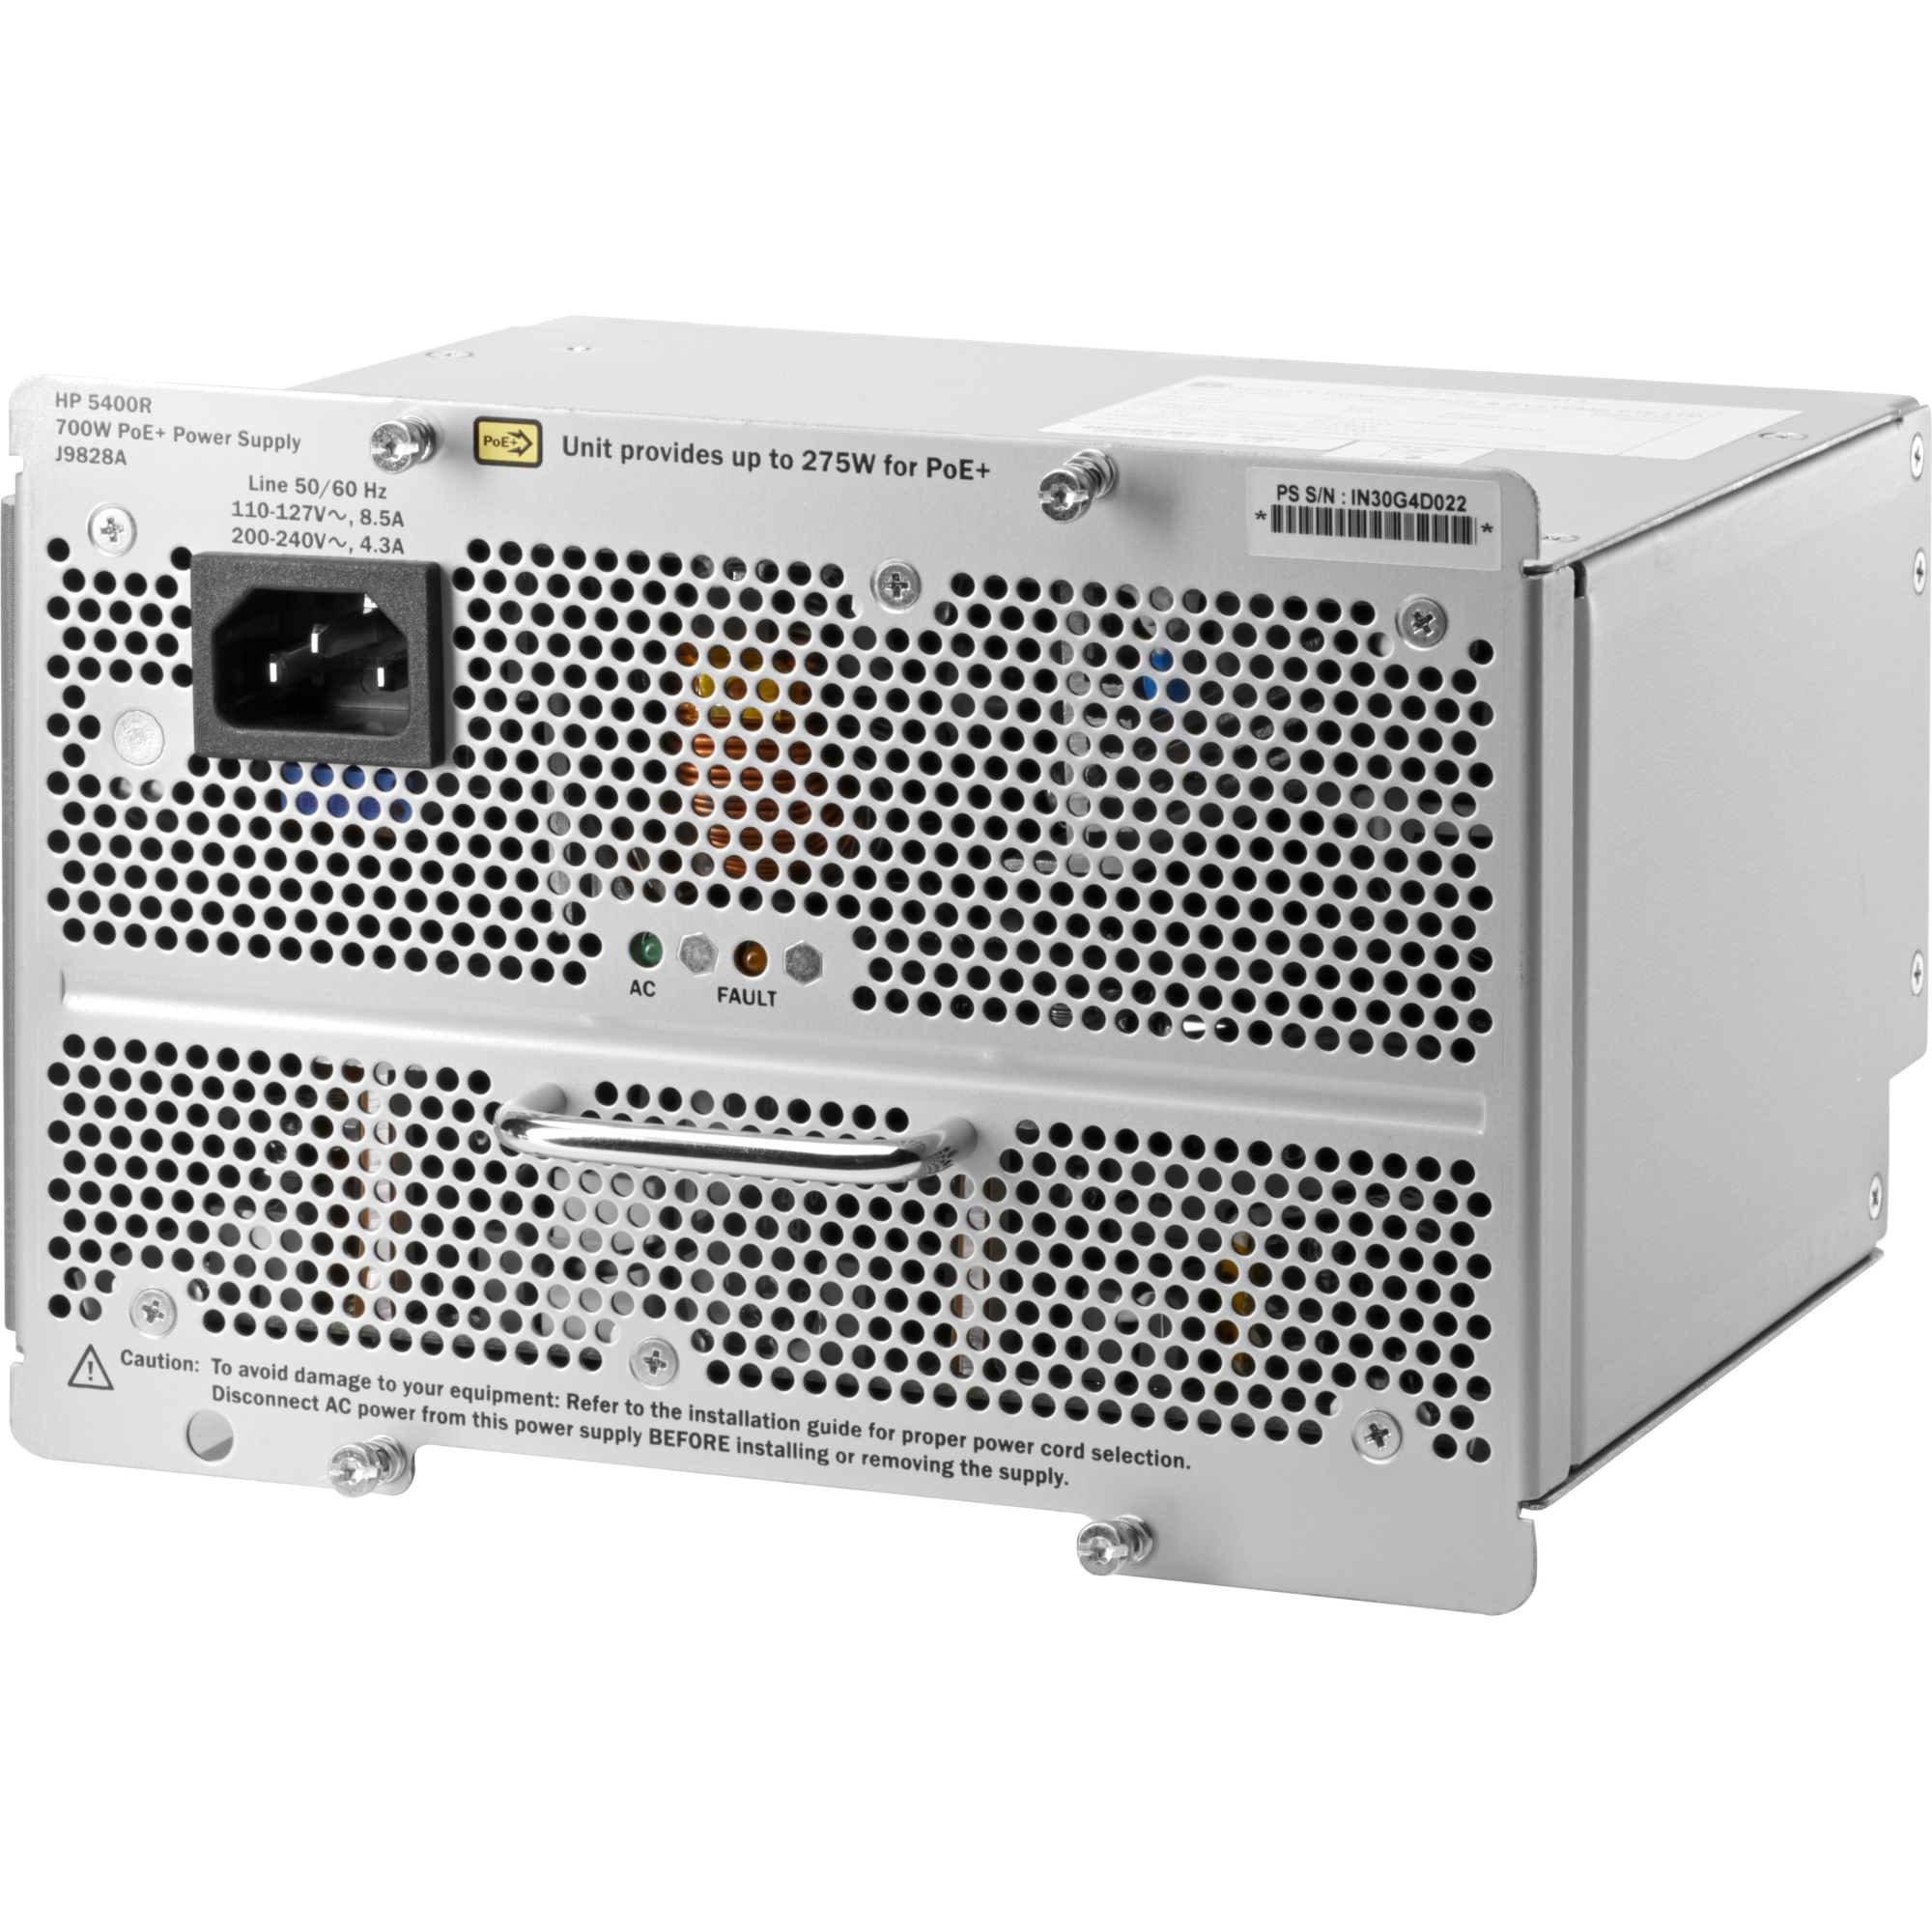 5400R zl2 700W POE+ AC power supply - Installs in the switch chassis as primary or redundant supply for load sharing or POE power (up to 275W) - Requires 100-127VAC or 200-240VAC at 50-60Hz - Recommended to use the same model power supplies in a system